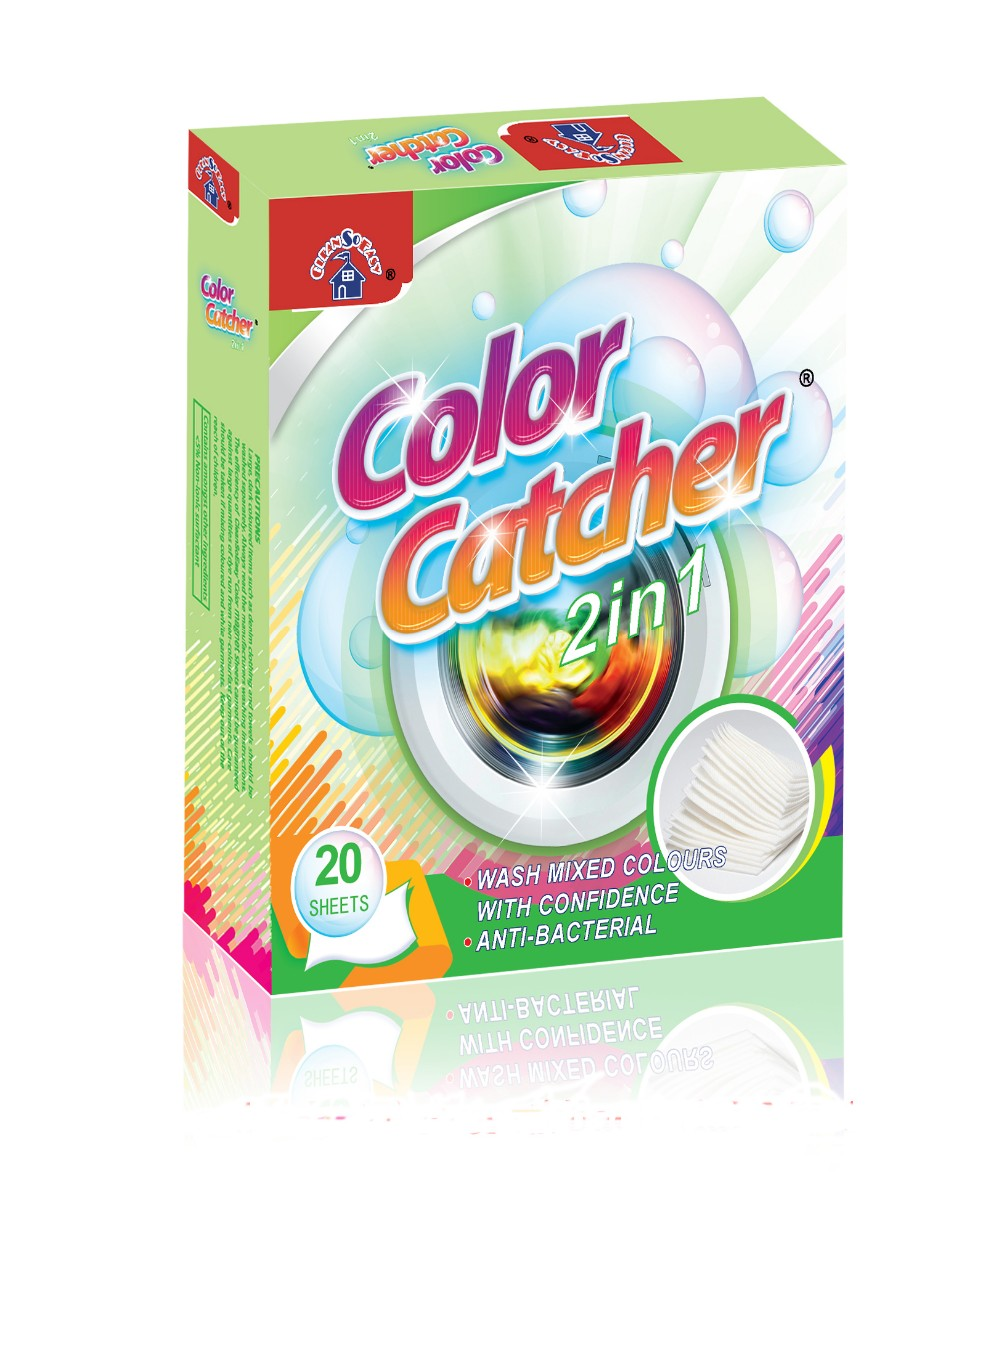 OEM service fabric nonwoven cloth color catcher sheets used in washing machine to trap loose colors/dyes